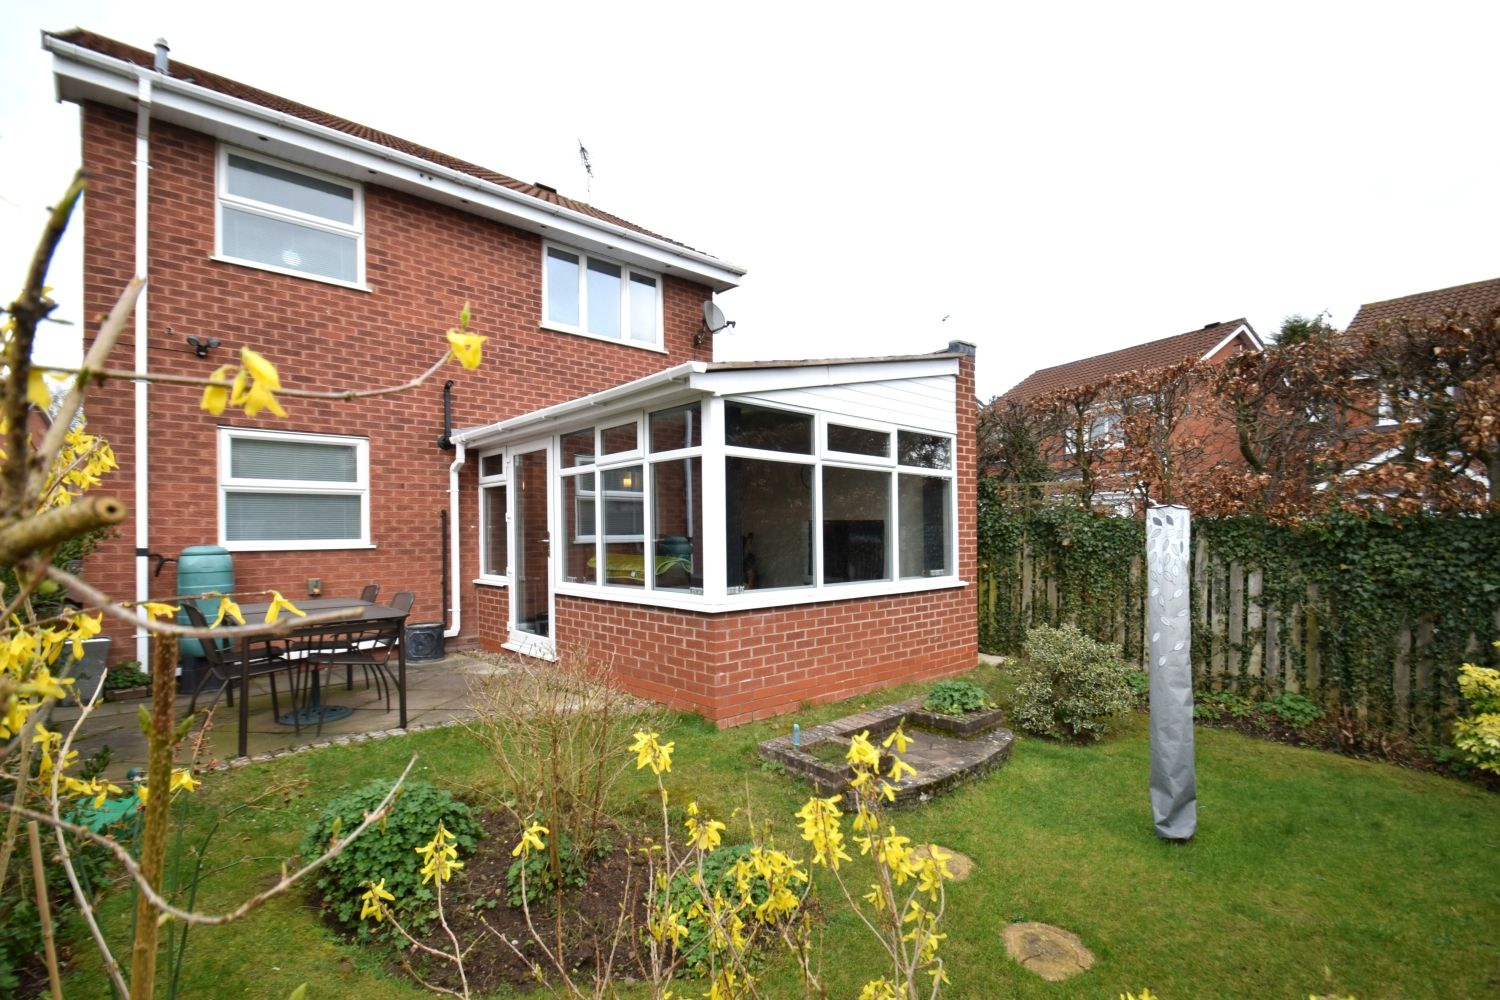 3 bed detached for sale in Foxes Close, Blackwell, B60  - Property Image 22